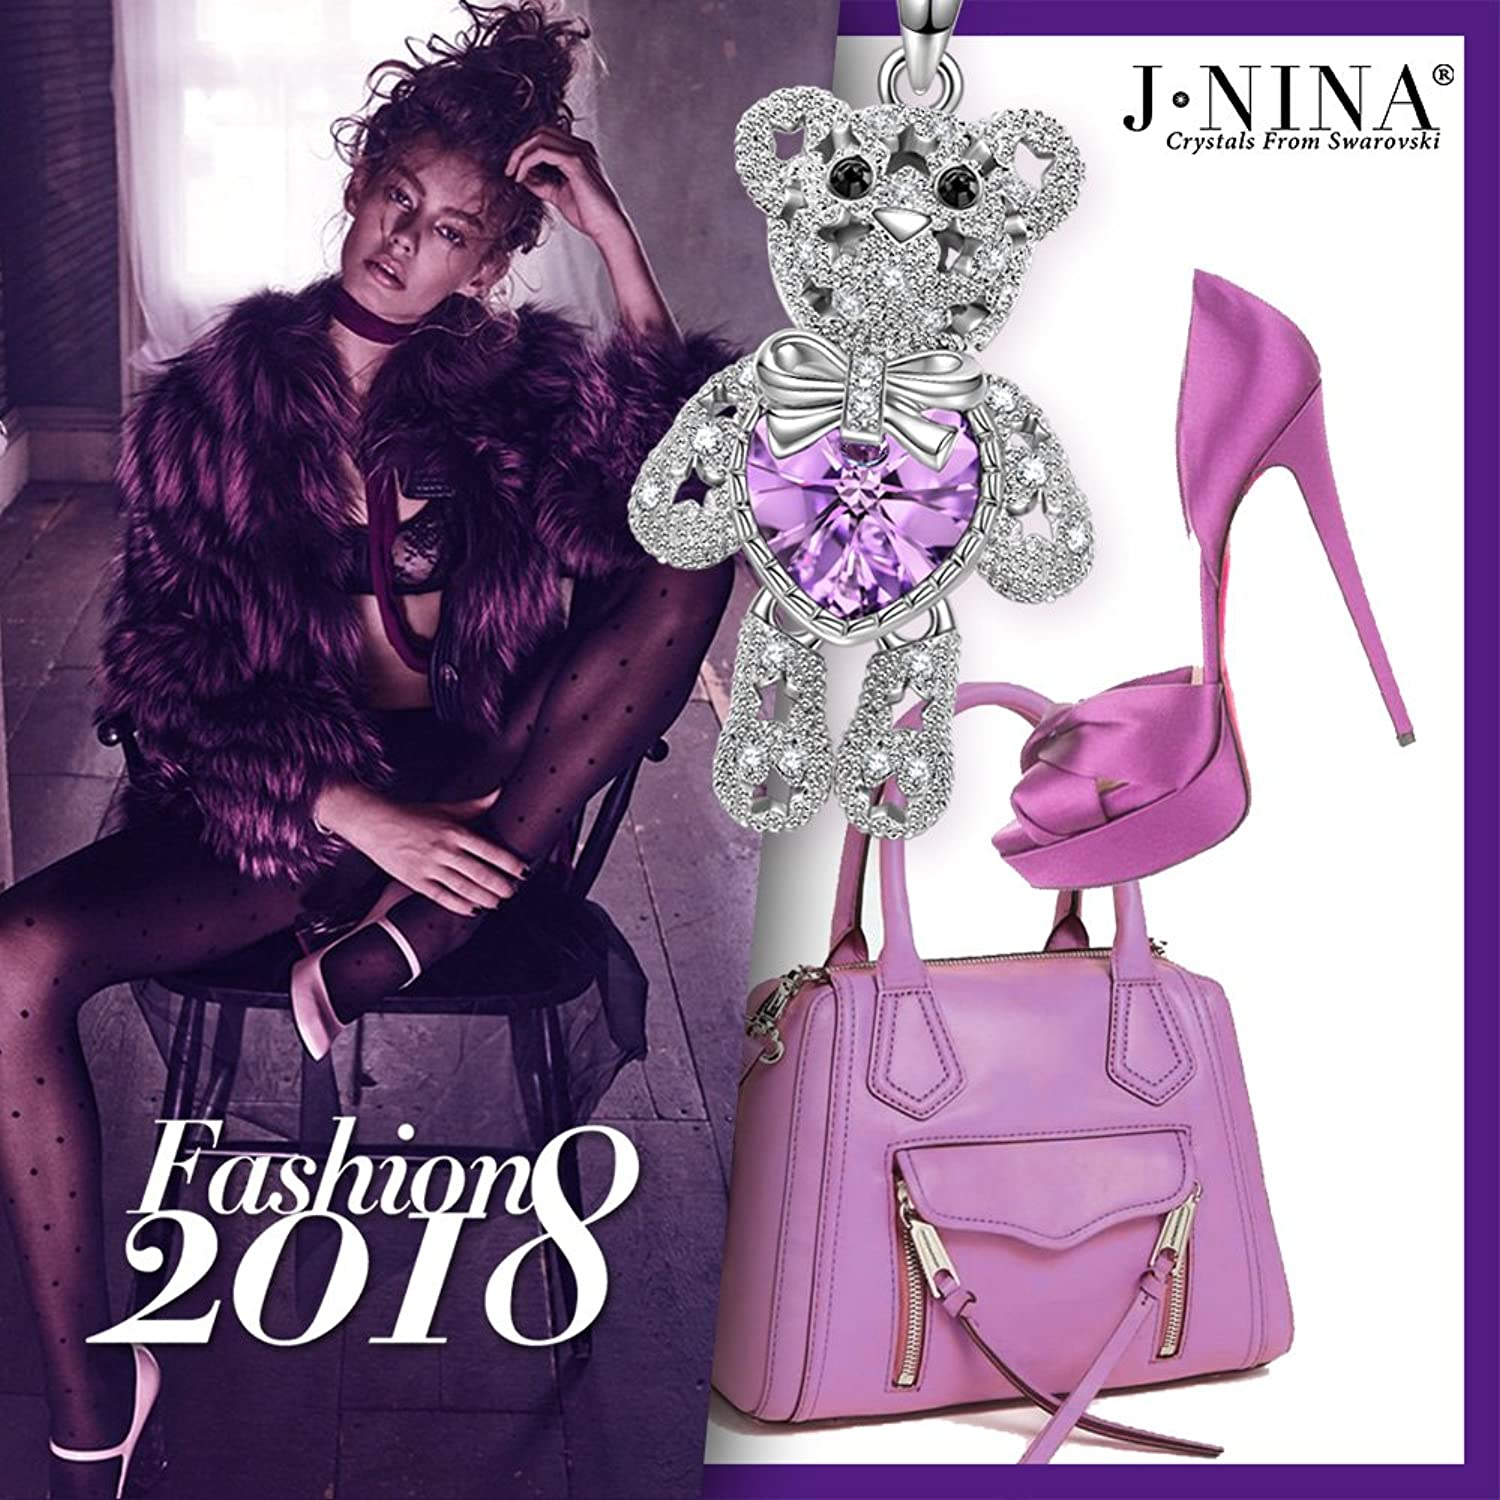 J NINA Bucci Bear-Be Optimistic Bear Pendant Necklace with Crystals from Swarovski - Give you warmth, strength and courage